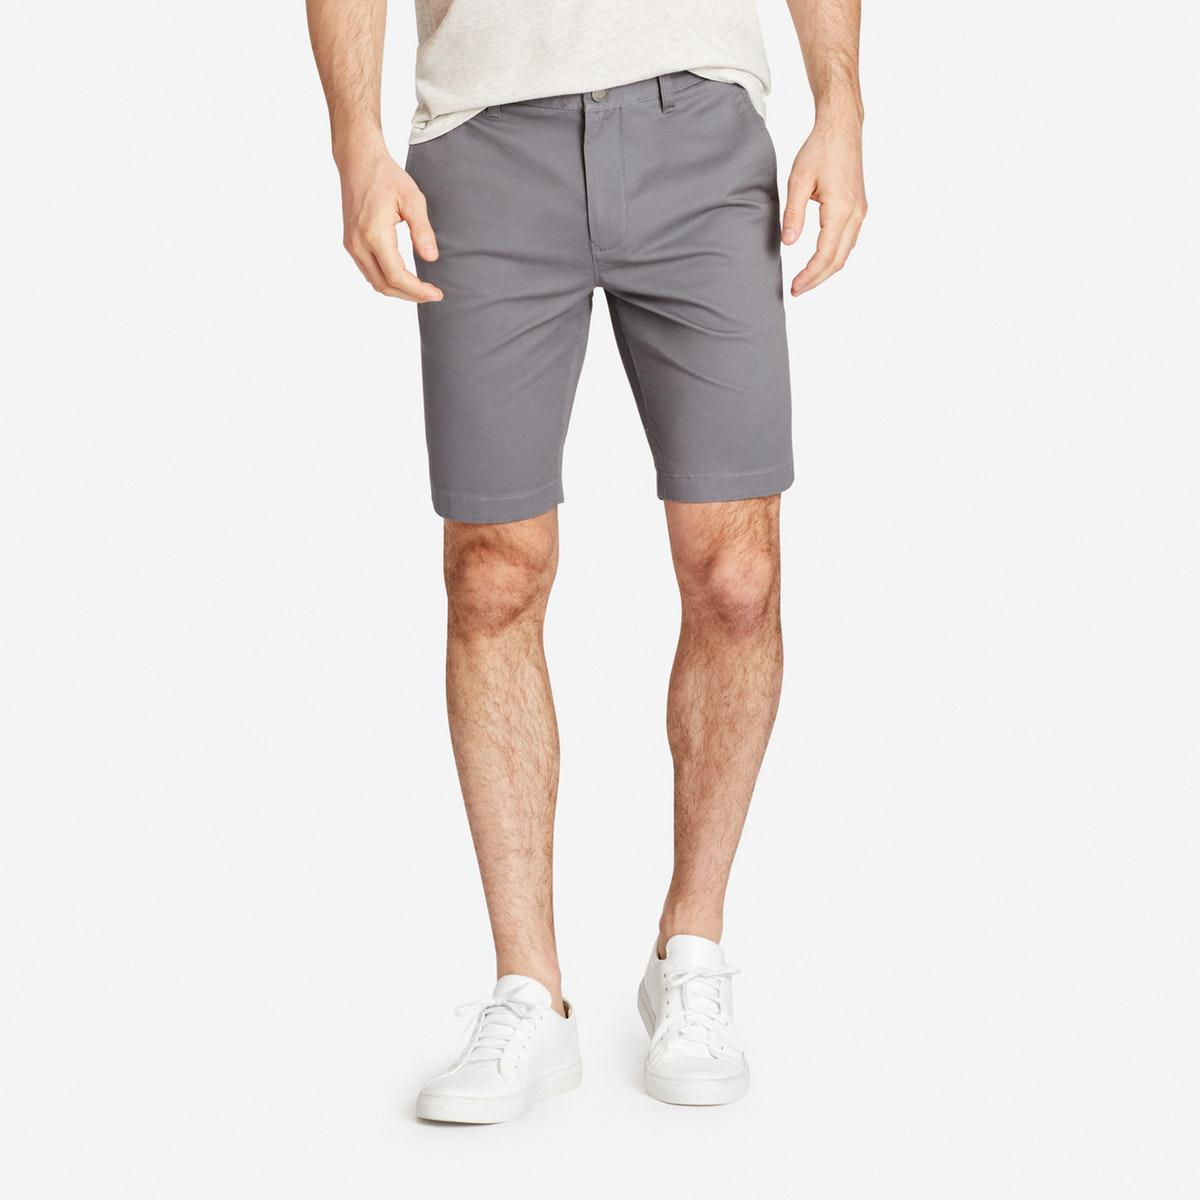 ee77137083 Bonobos Slim Stretch Washed Chino Shorts in Gray for Men - Lyst